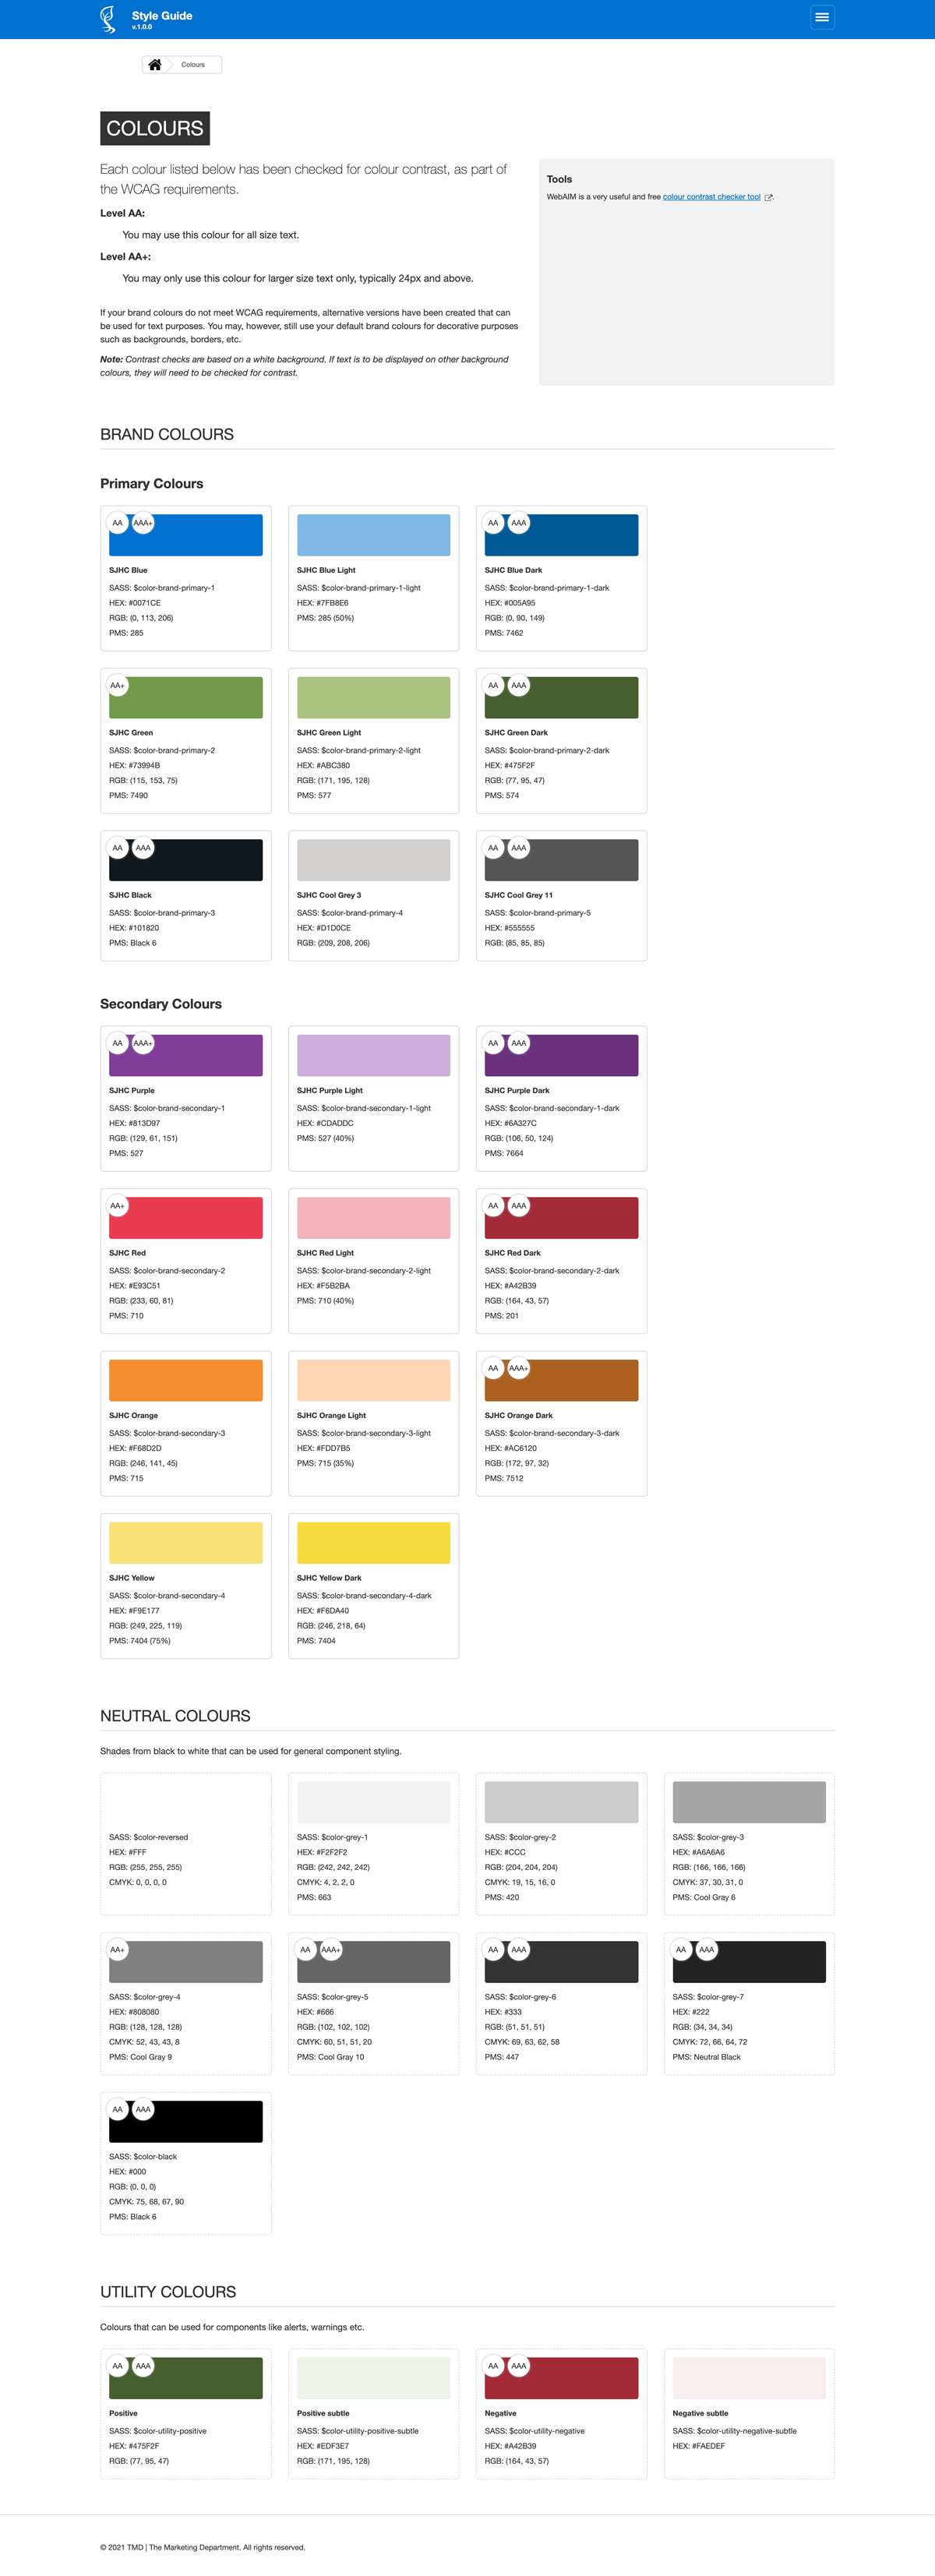 Style guide colours page